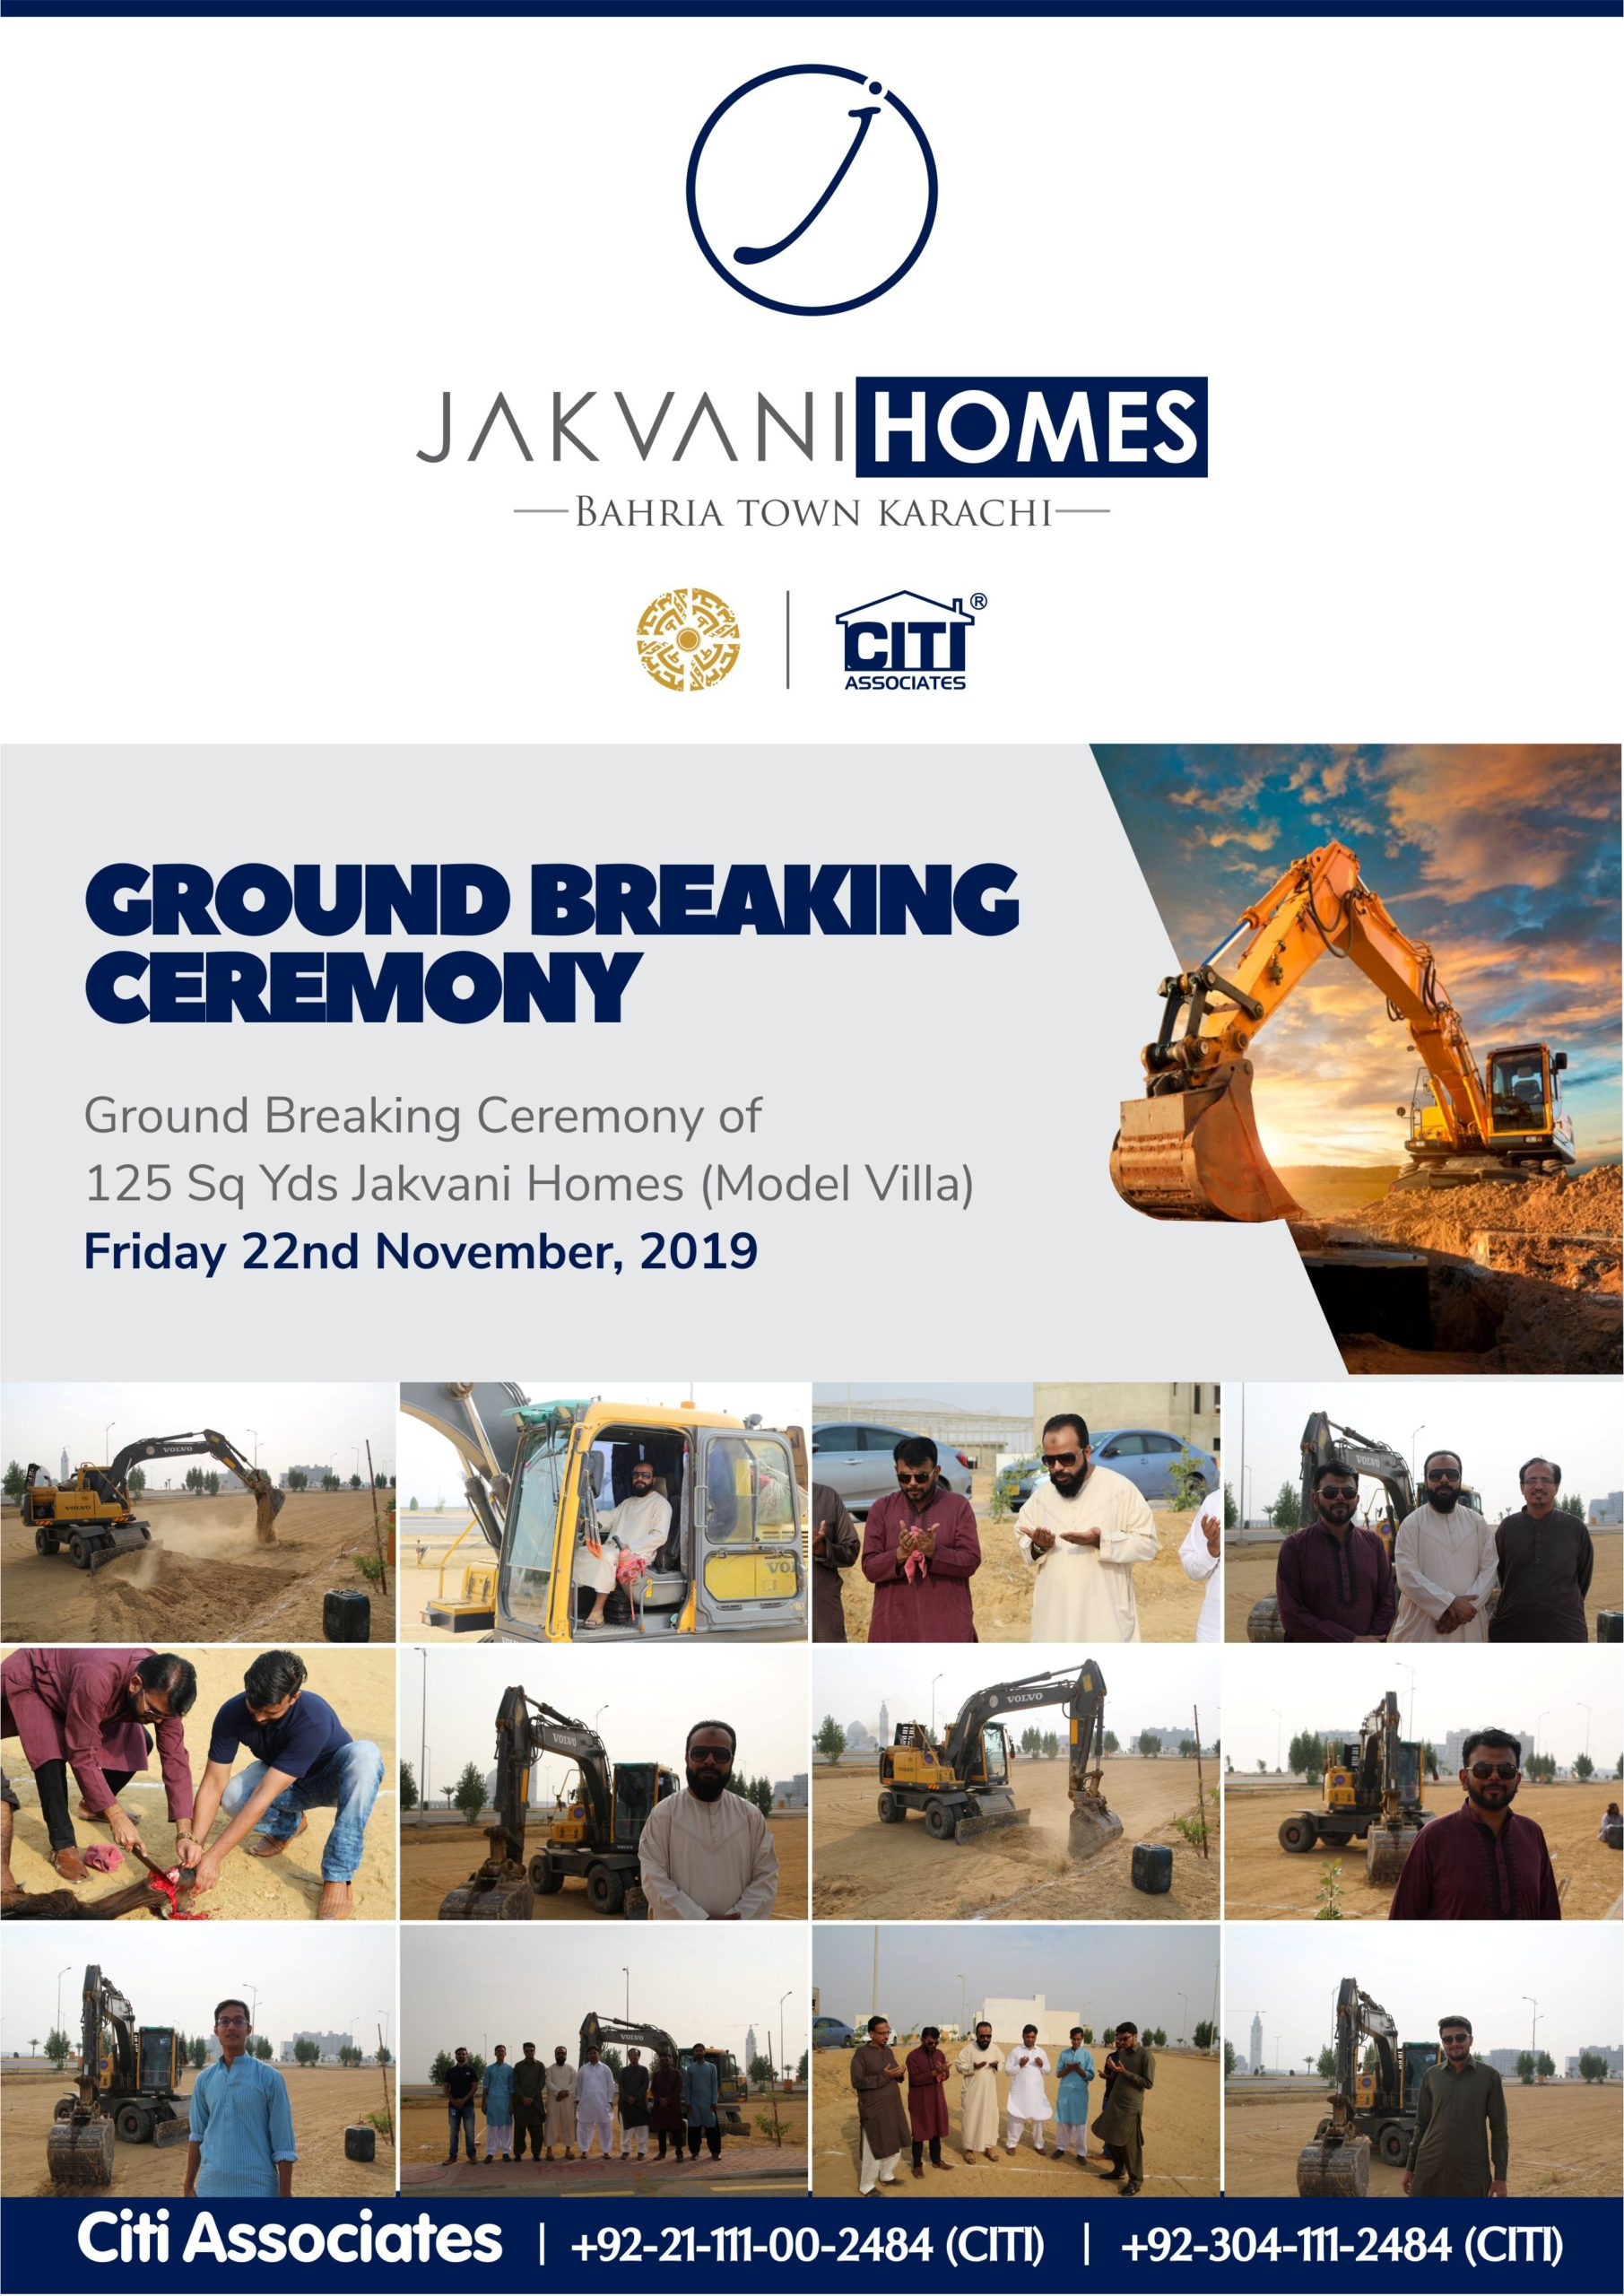 'Jakvani Homes' Ground Breaking Ceremony at Bahria Town Karachi